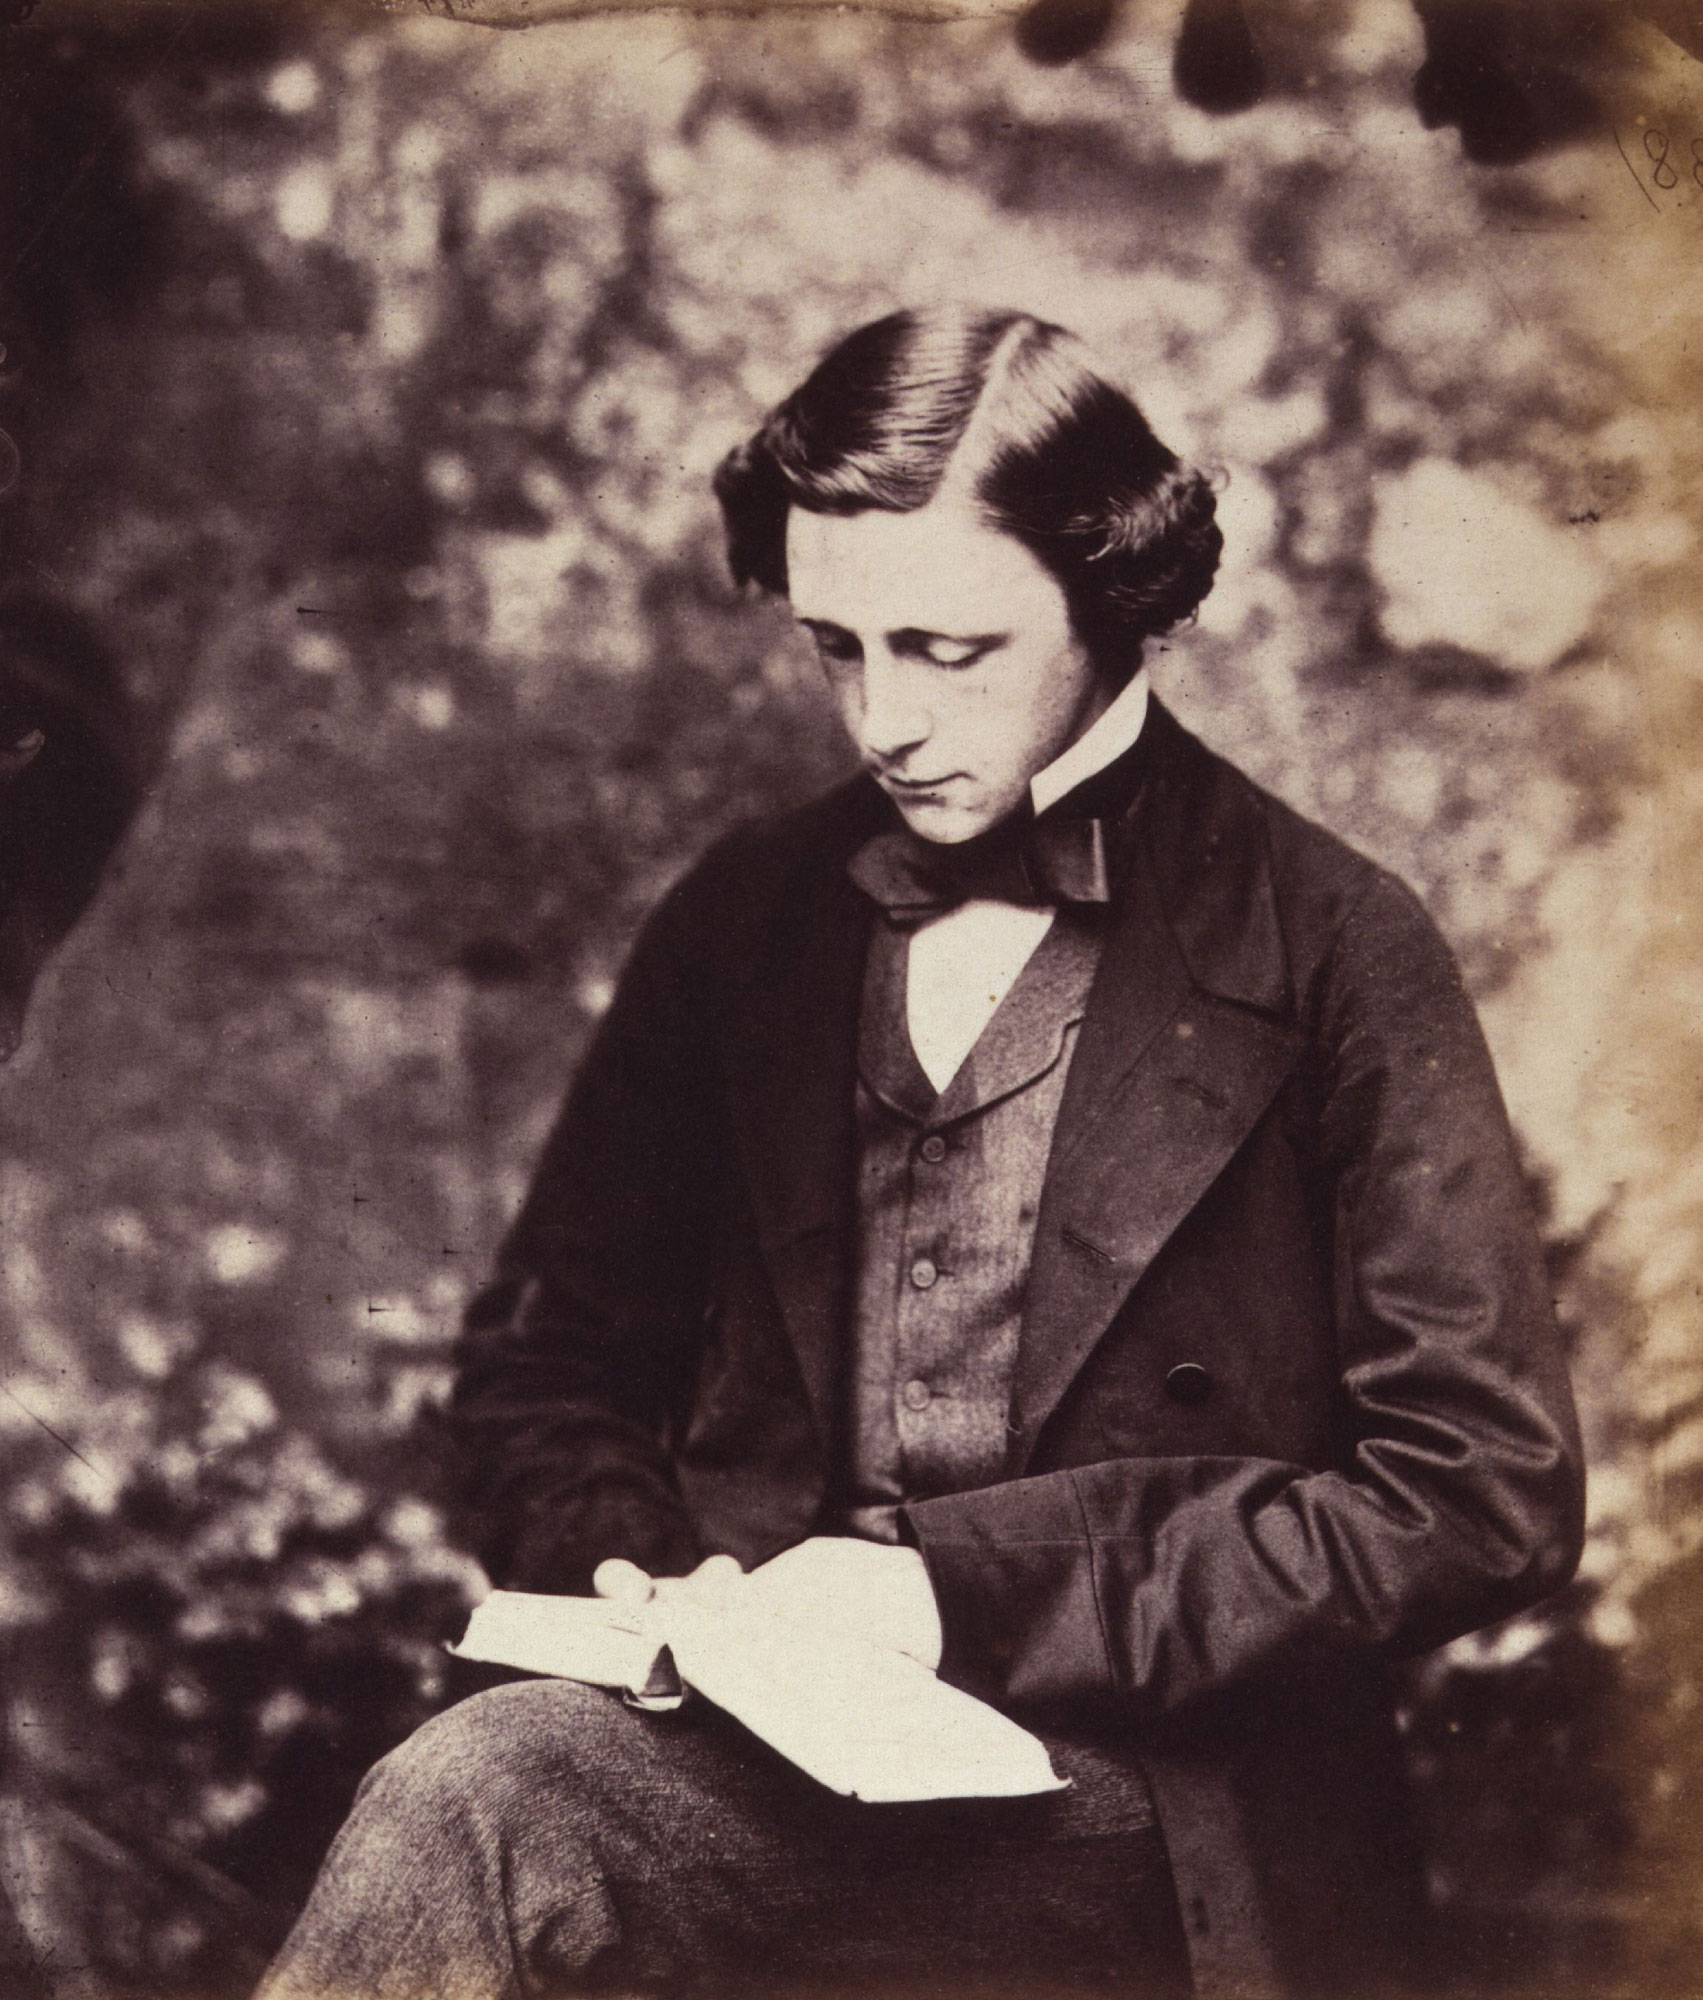 Lewis Carroll – author of Alice's Adventures in Wonderland - The